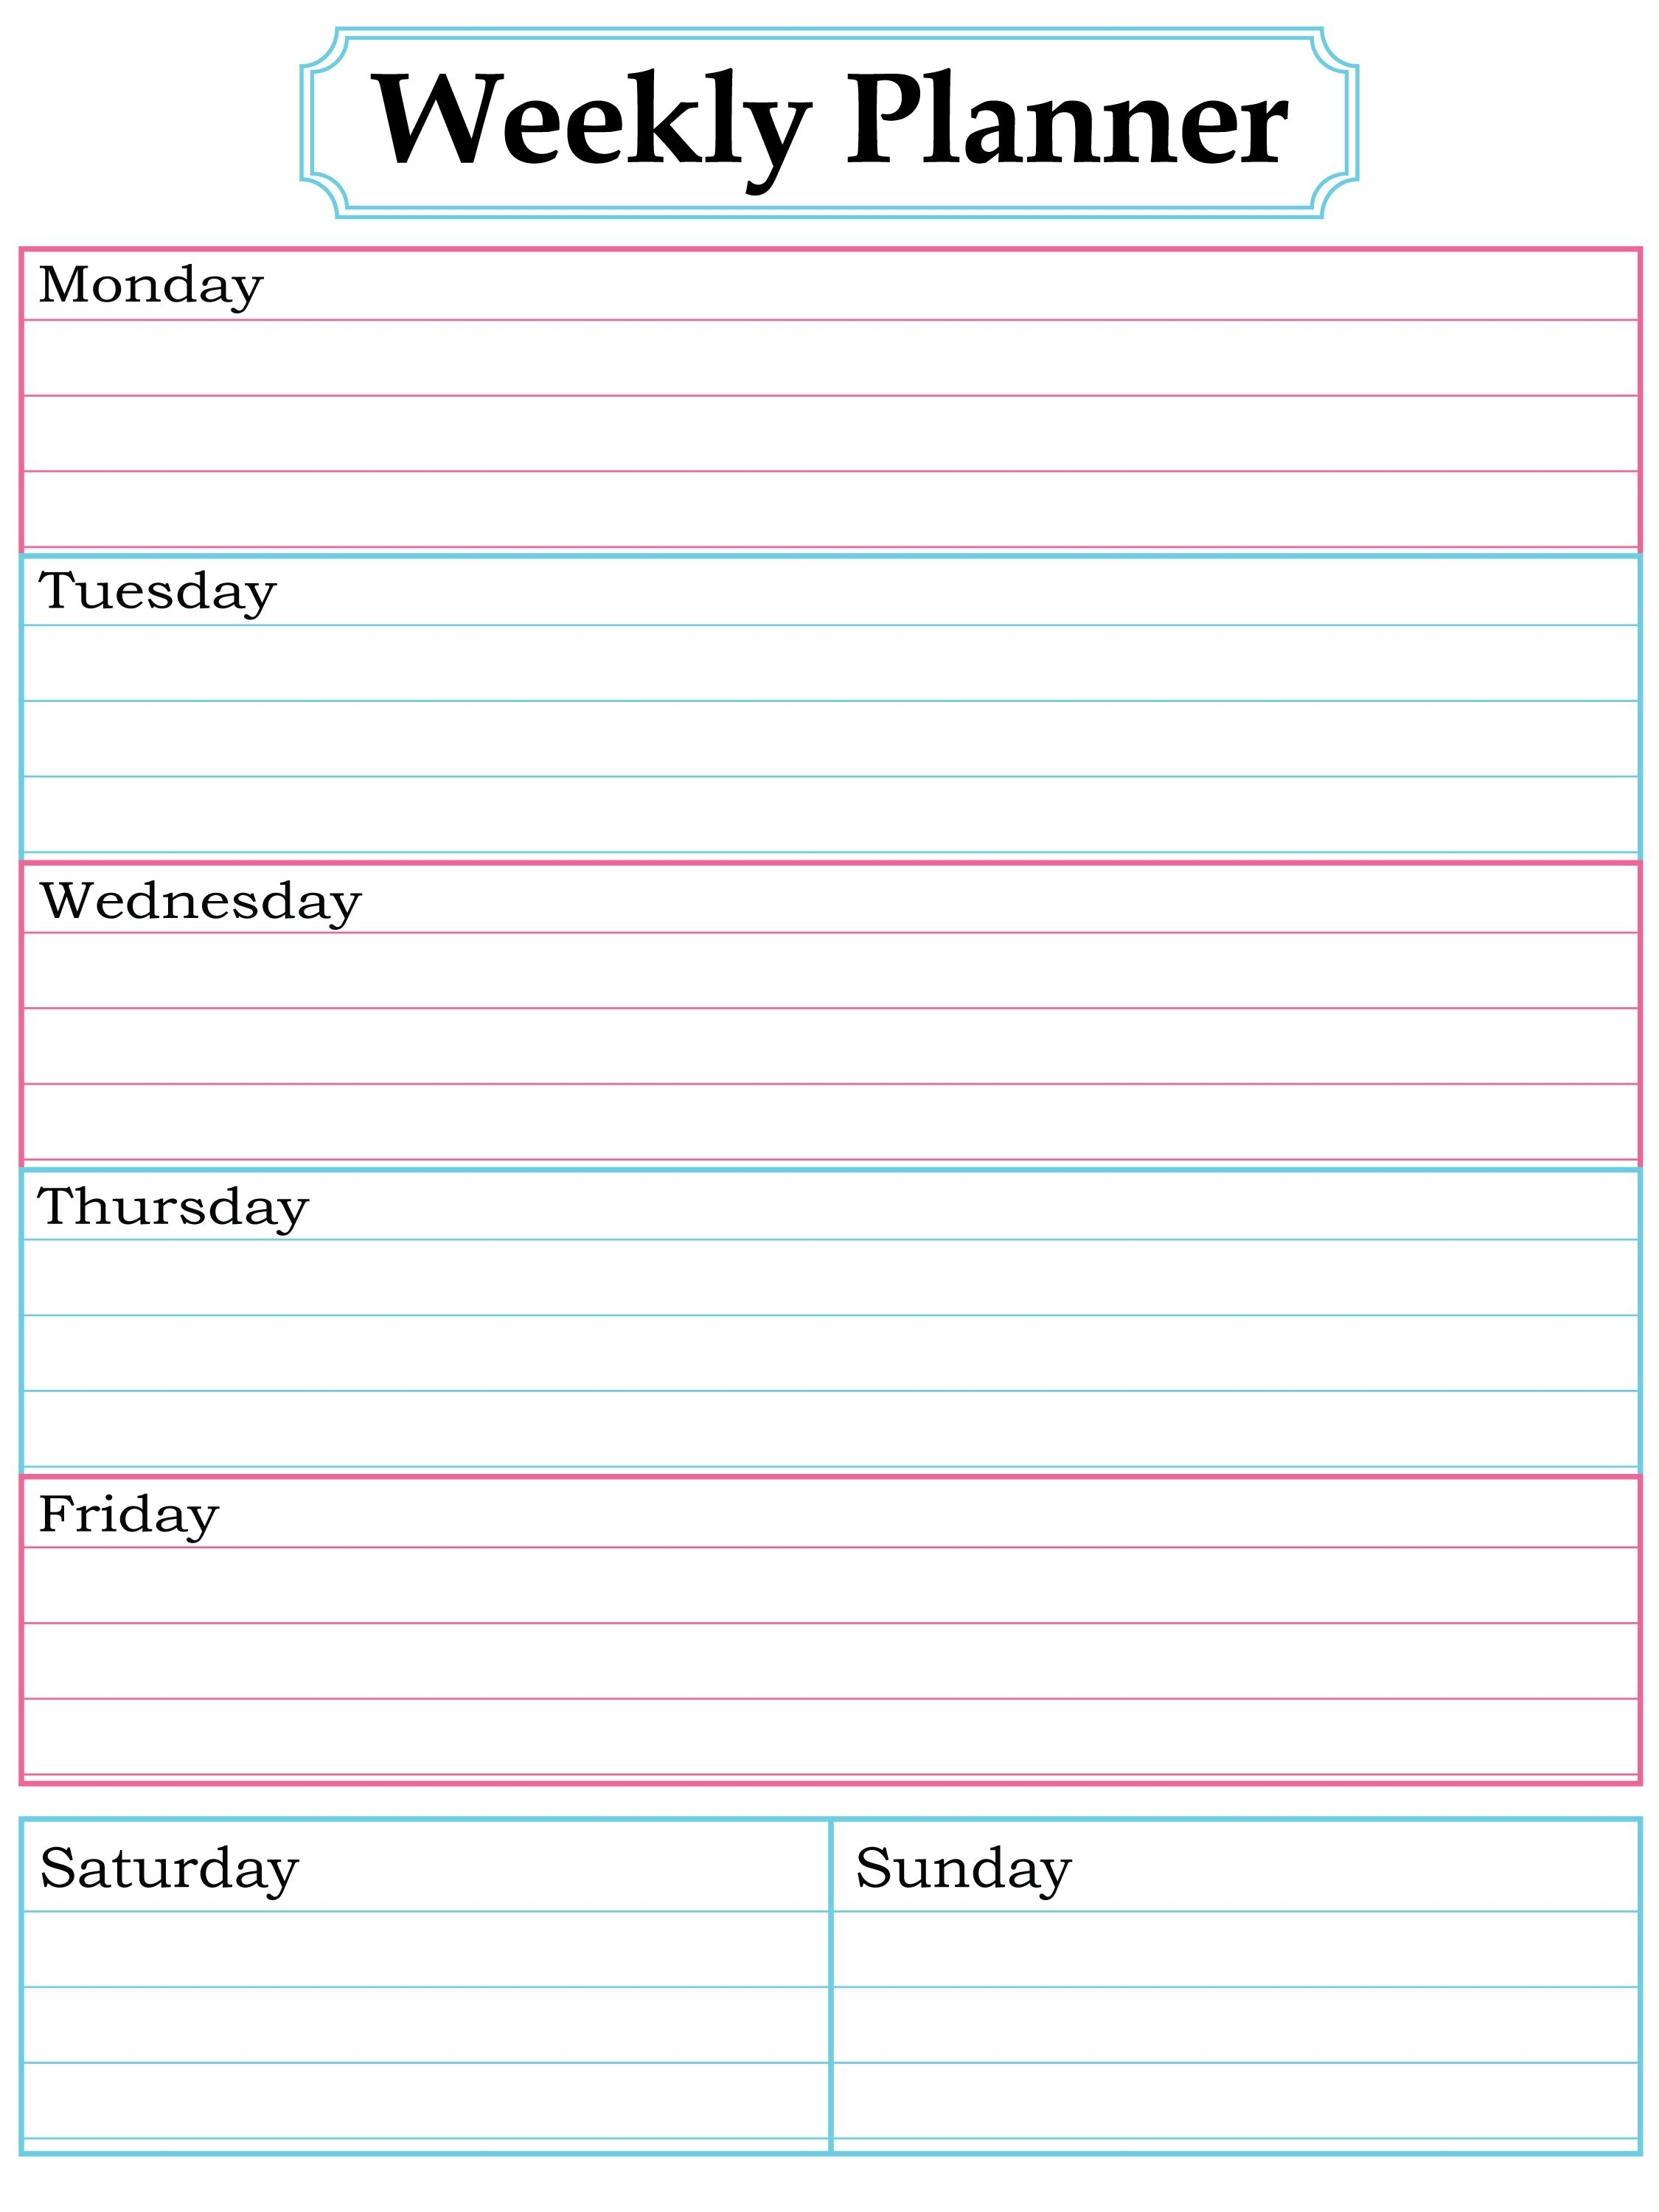 Weekly Planner Printable. Nice, Simple, Clean Lines. Homework Planner  PrintableFree Weekly Planner PrintableWeekly Calendar TemplateDay ...  Day To Day Planner Template Free